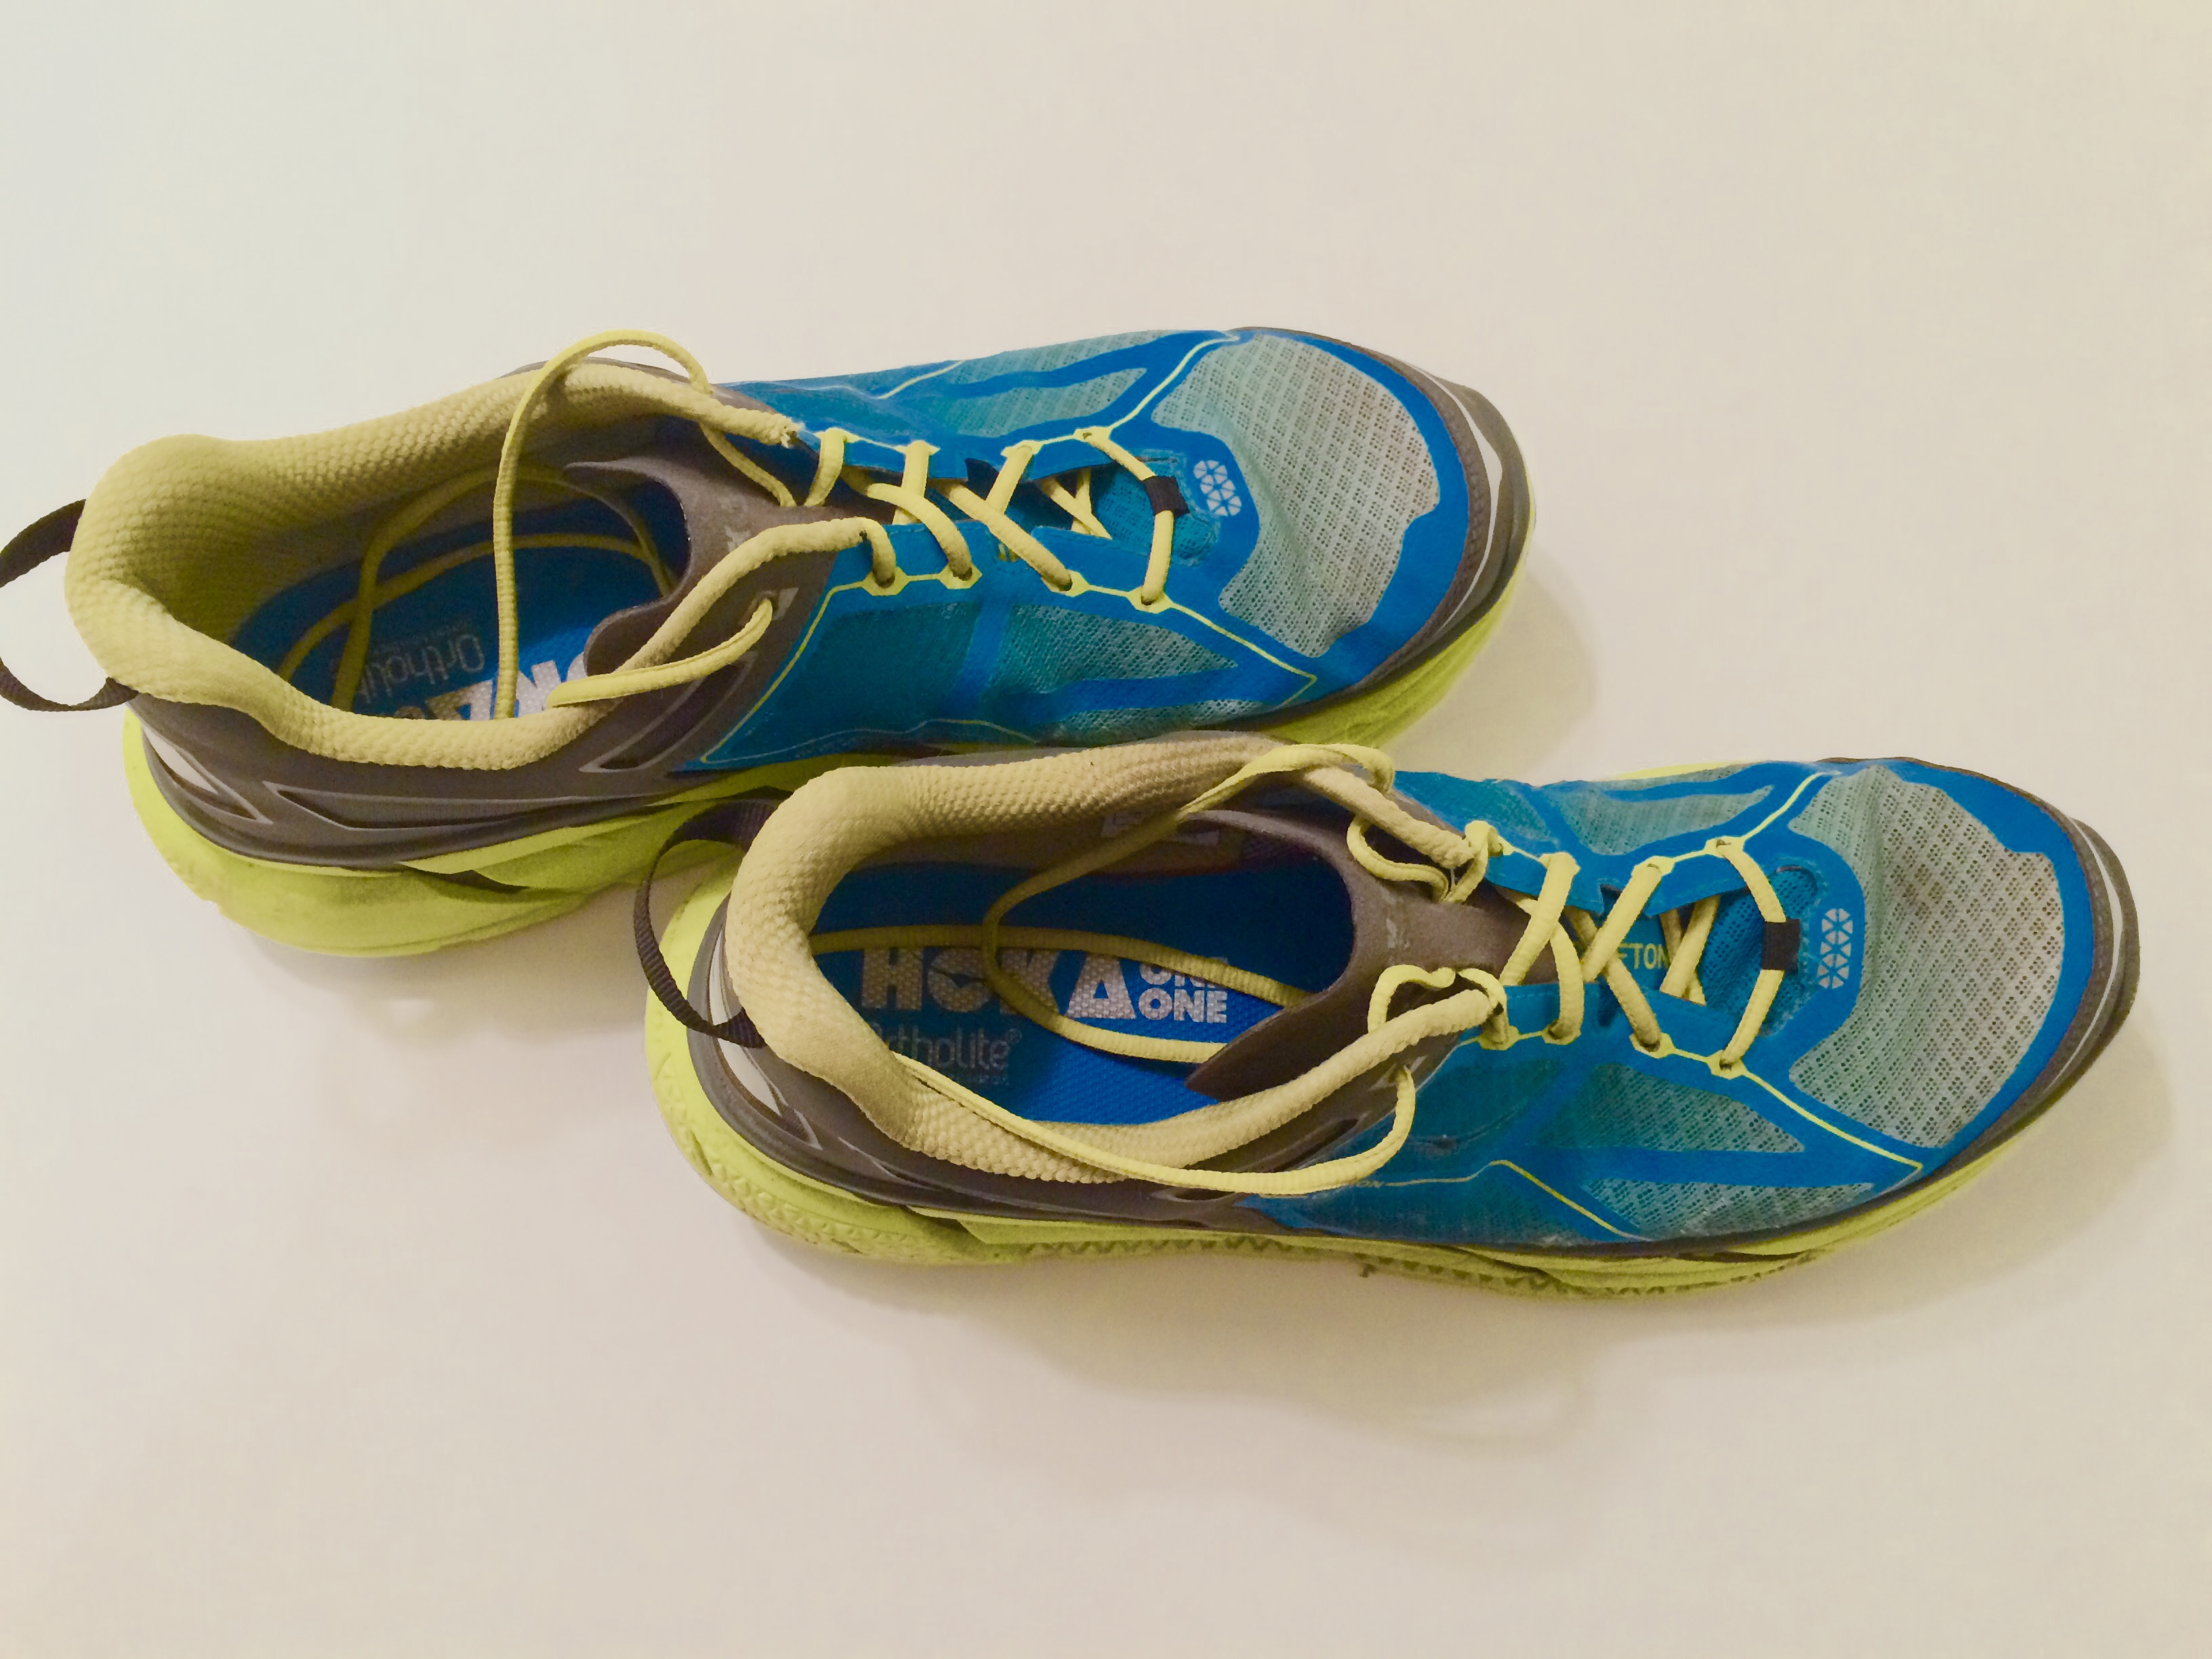 low priced 9509c a5ae6 Product Review: Hoka One One Clifton 1 | SubdueTheSloth.com